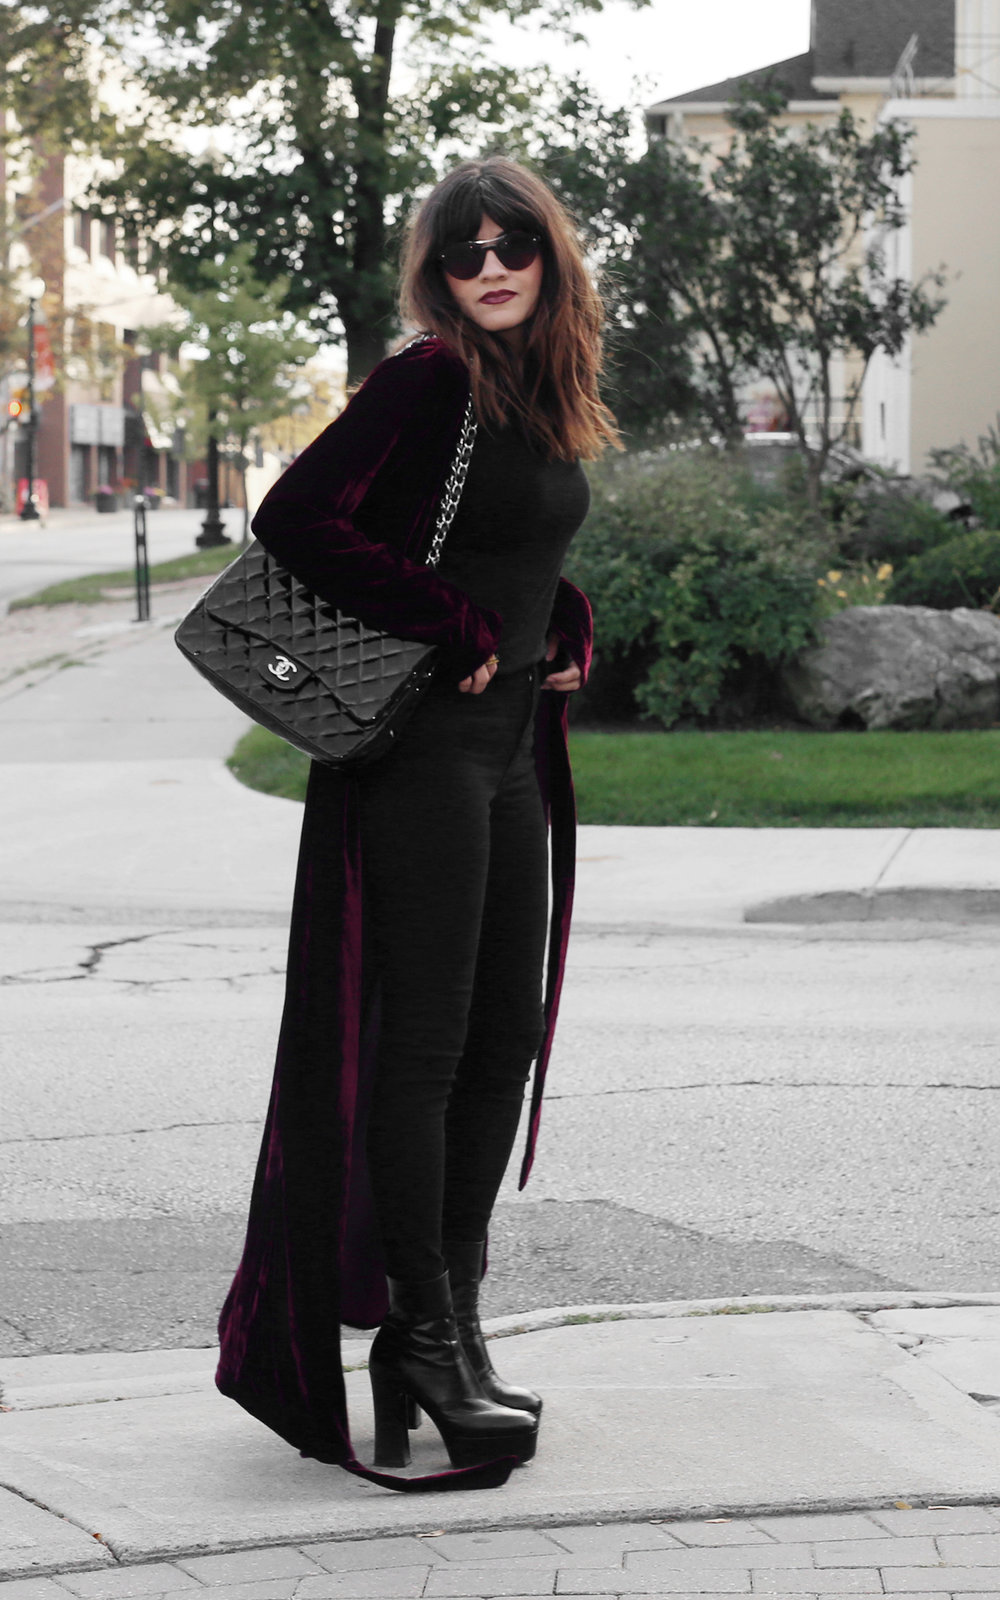 velvet duster coat street style - chanel patent leather jumbo bag, saint  laurent platform boots 2416 93790ffdfc